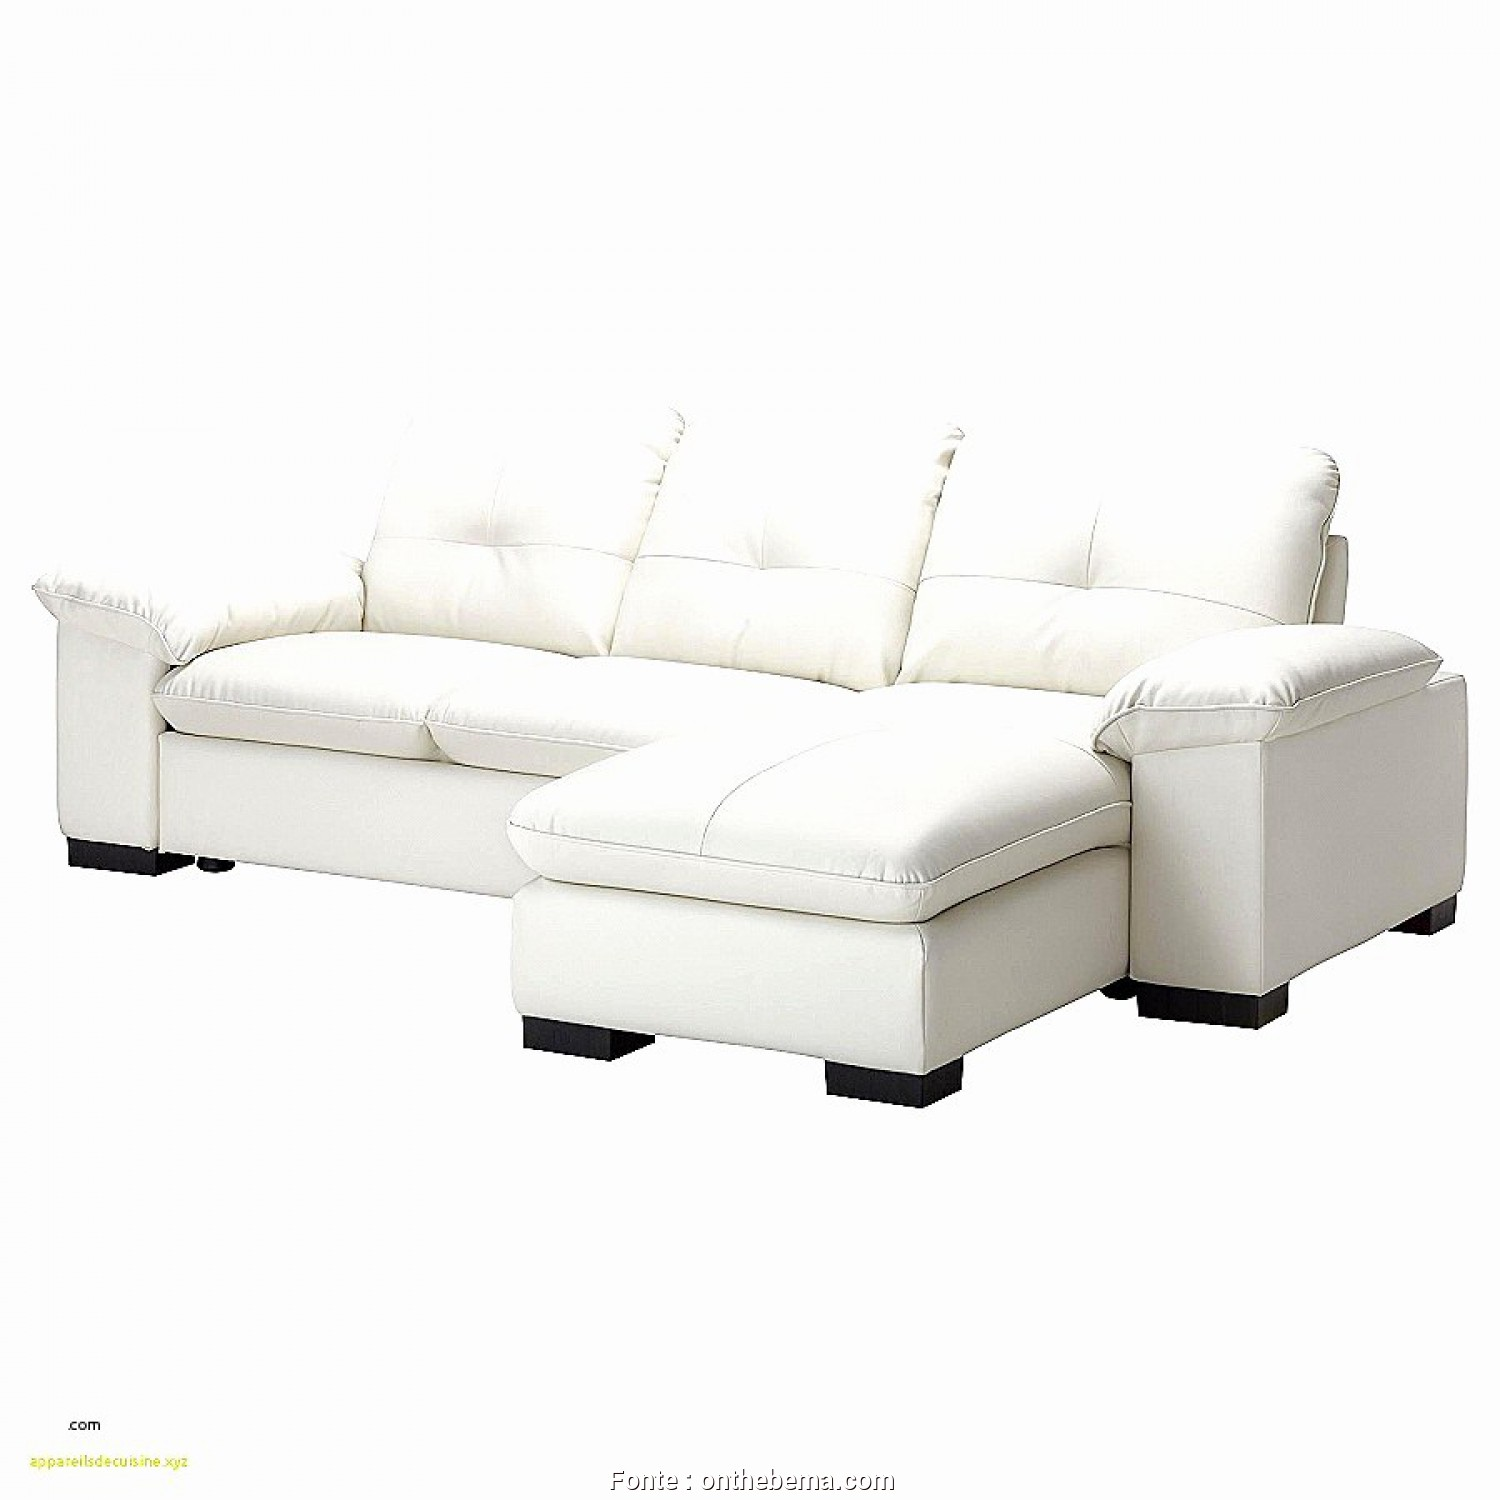 Ikea Vilasund 2Er, Ideale Best Ikea Sleeper Sofa Lovely Lovely Ikea Vilasund 2 Seat Sofa Bed